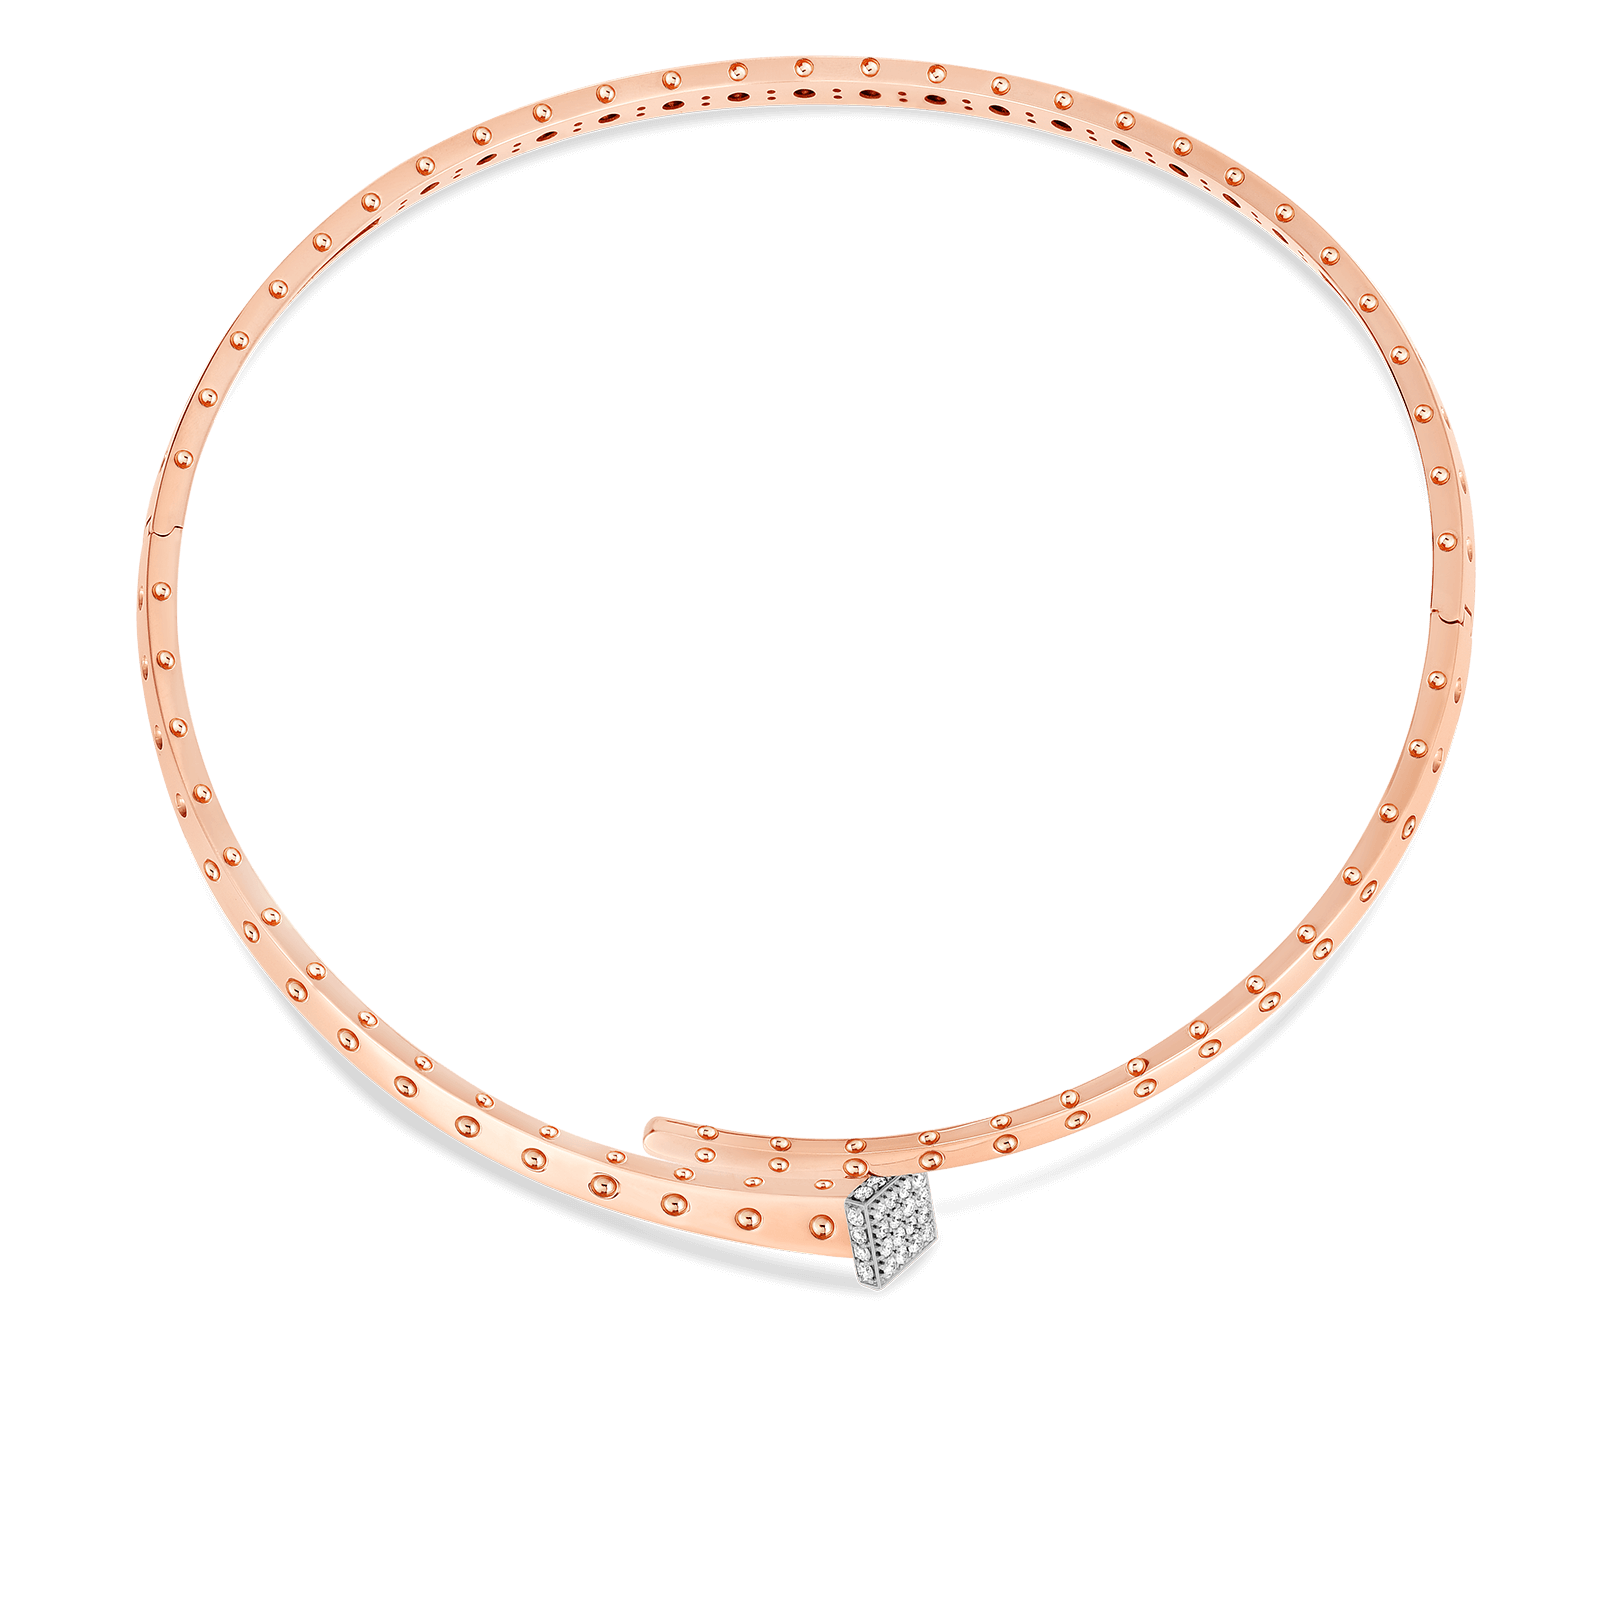 Roberto-Coin-18k-rose-gold-18k-white-gold-Chiodo-Collar-with-Diamonds-8882058AHCOXalt